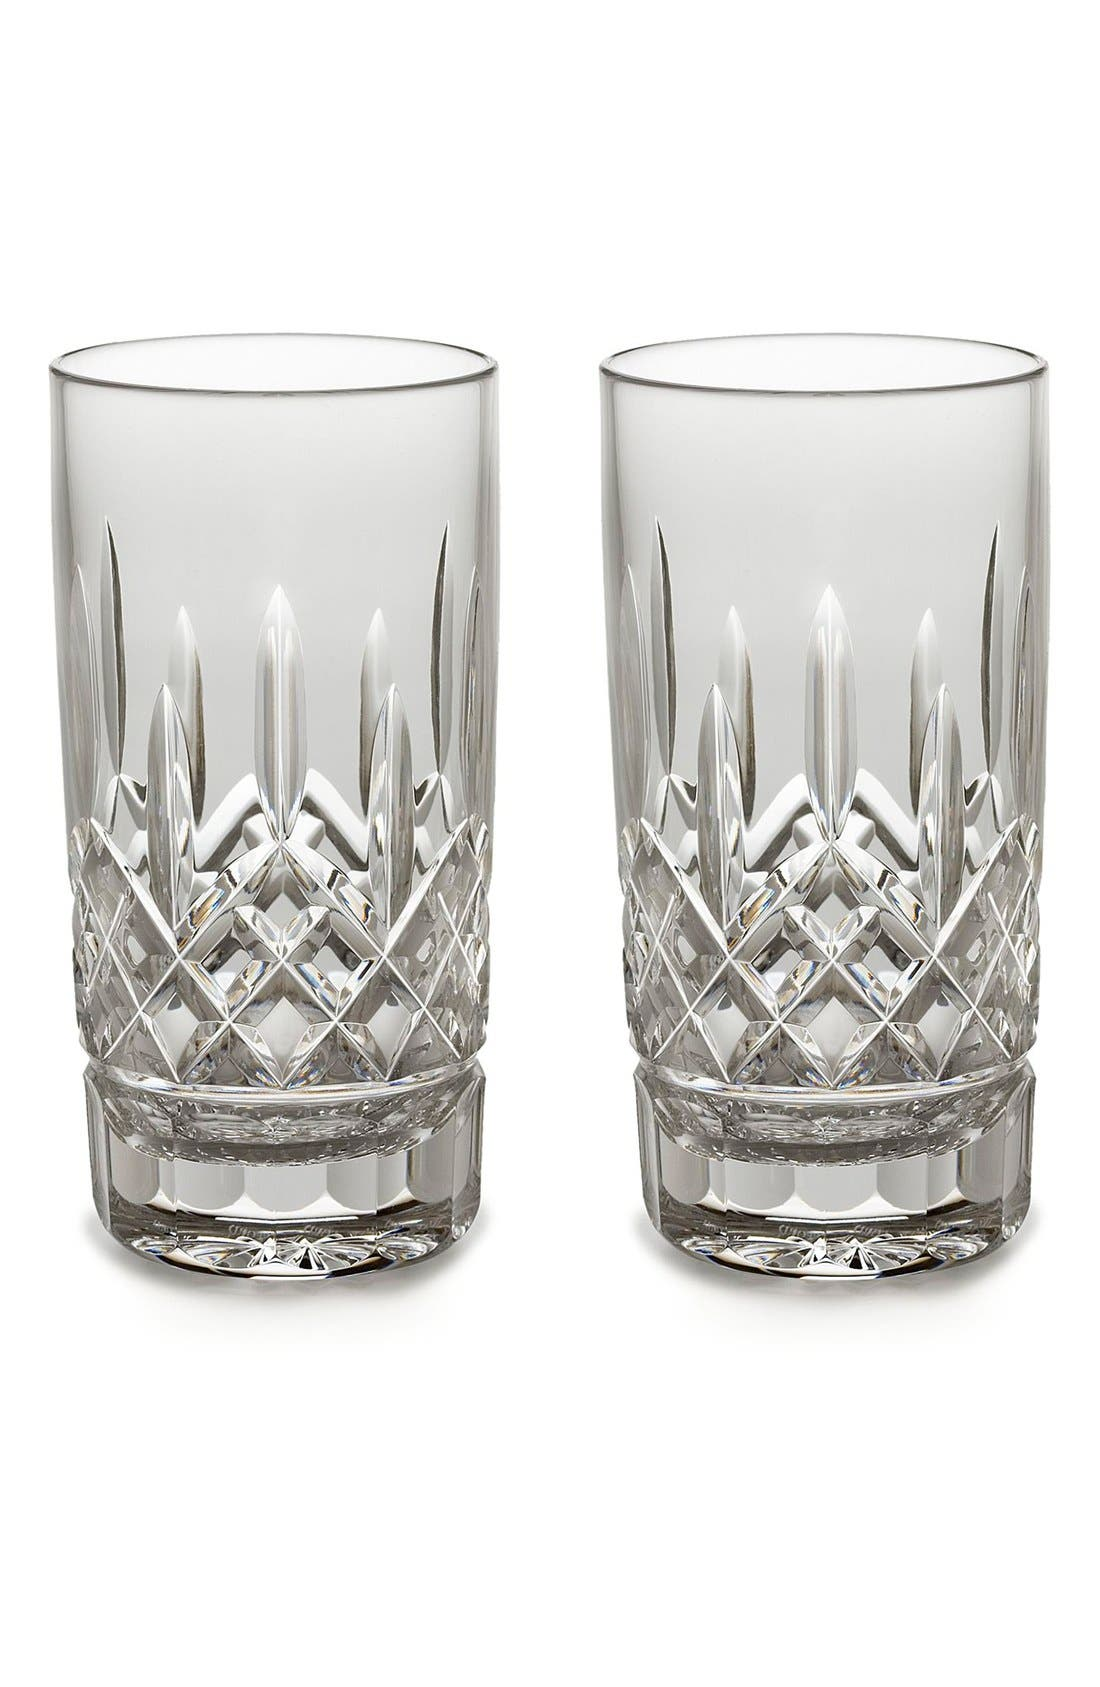 Alternate Image 1 Selected - Waterford 'Lismore' Lead Crystal Highball Glasses (Set of 2)